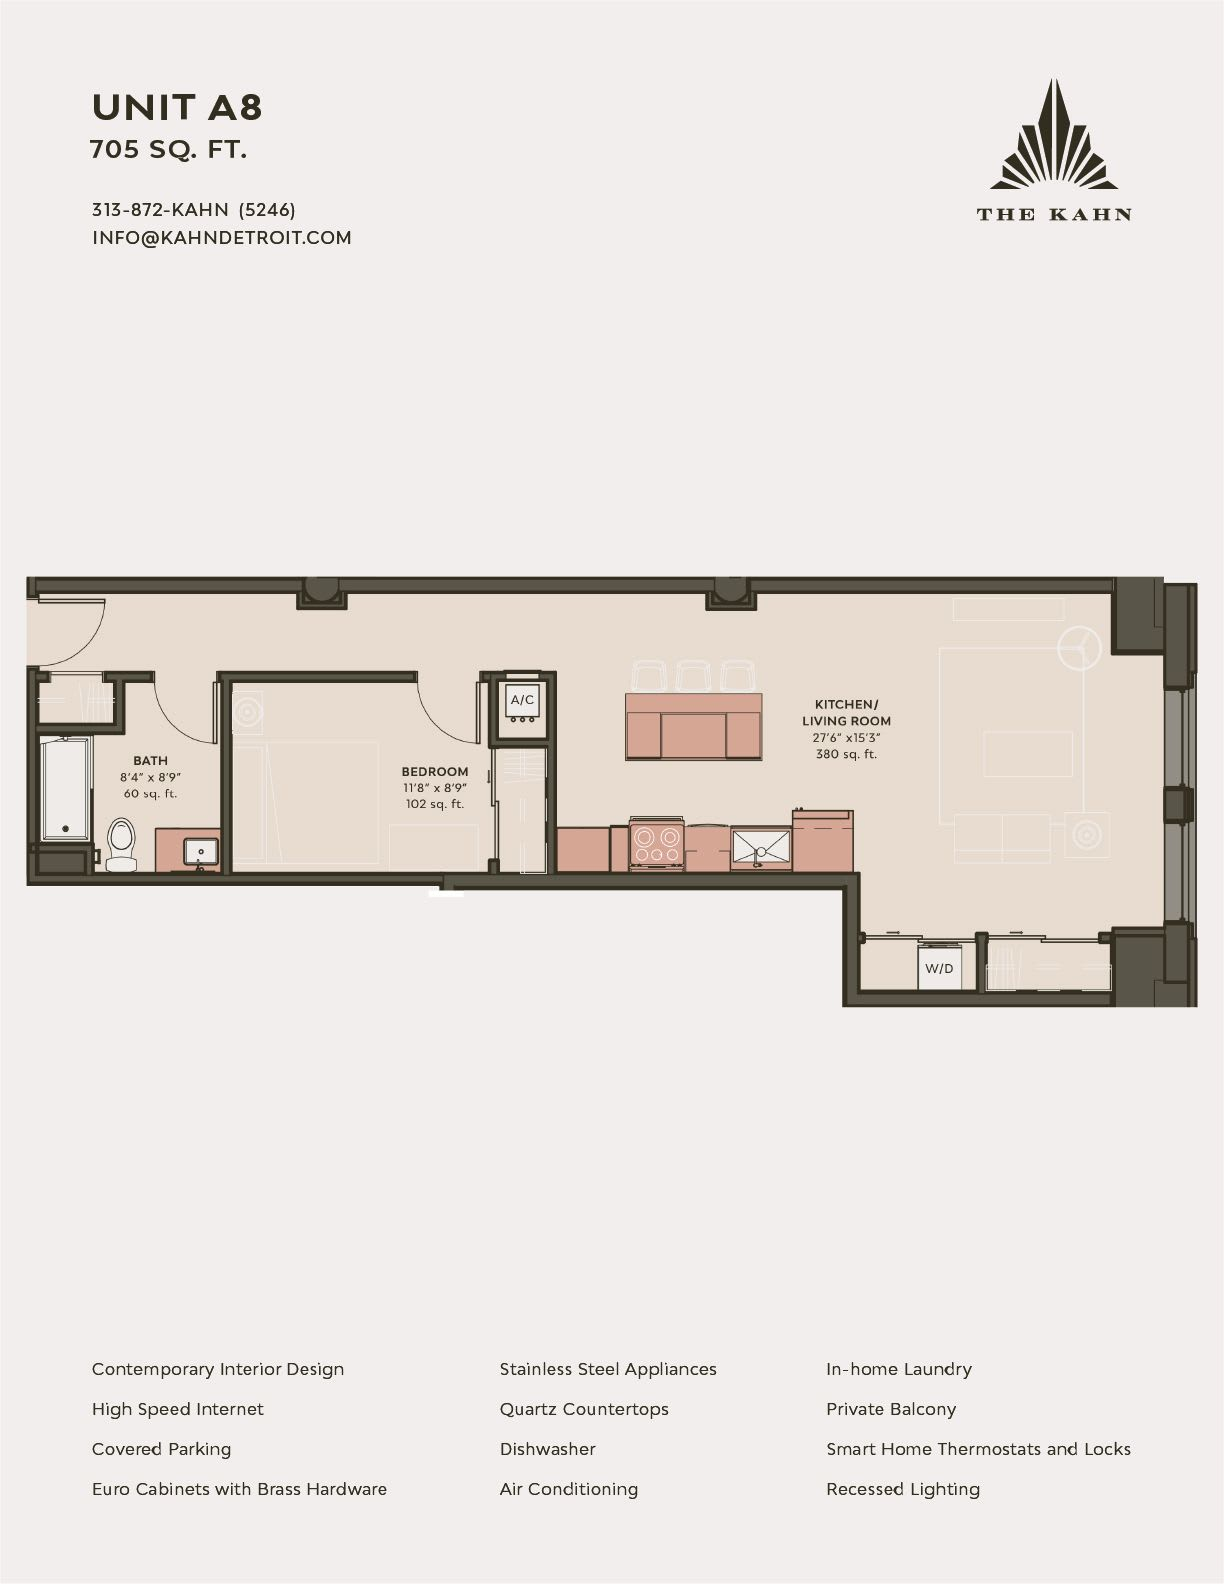 A8 floor plan image at The Kahn in Detroit, Michigan